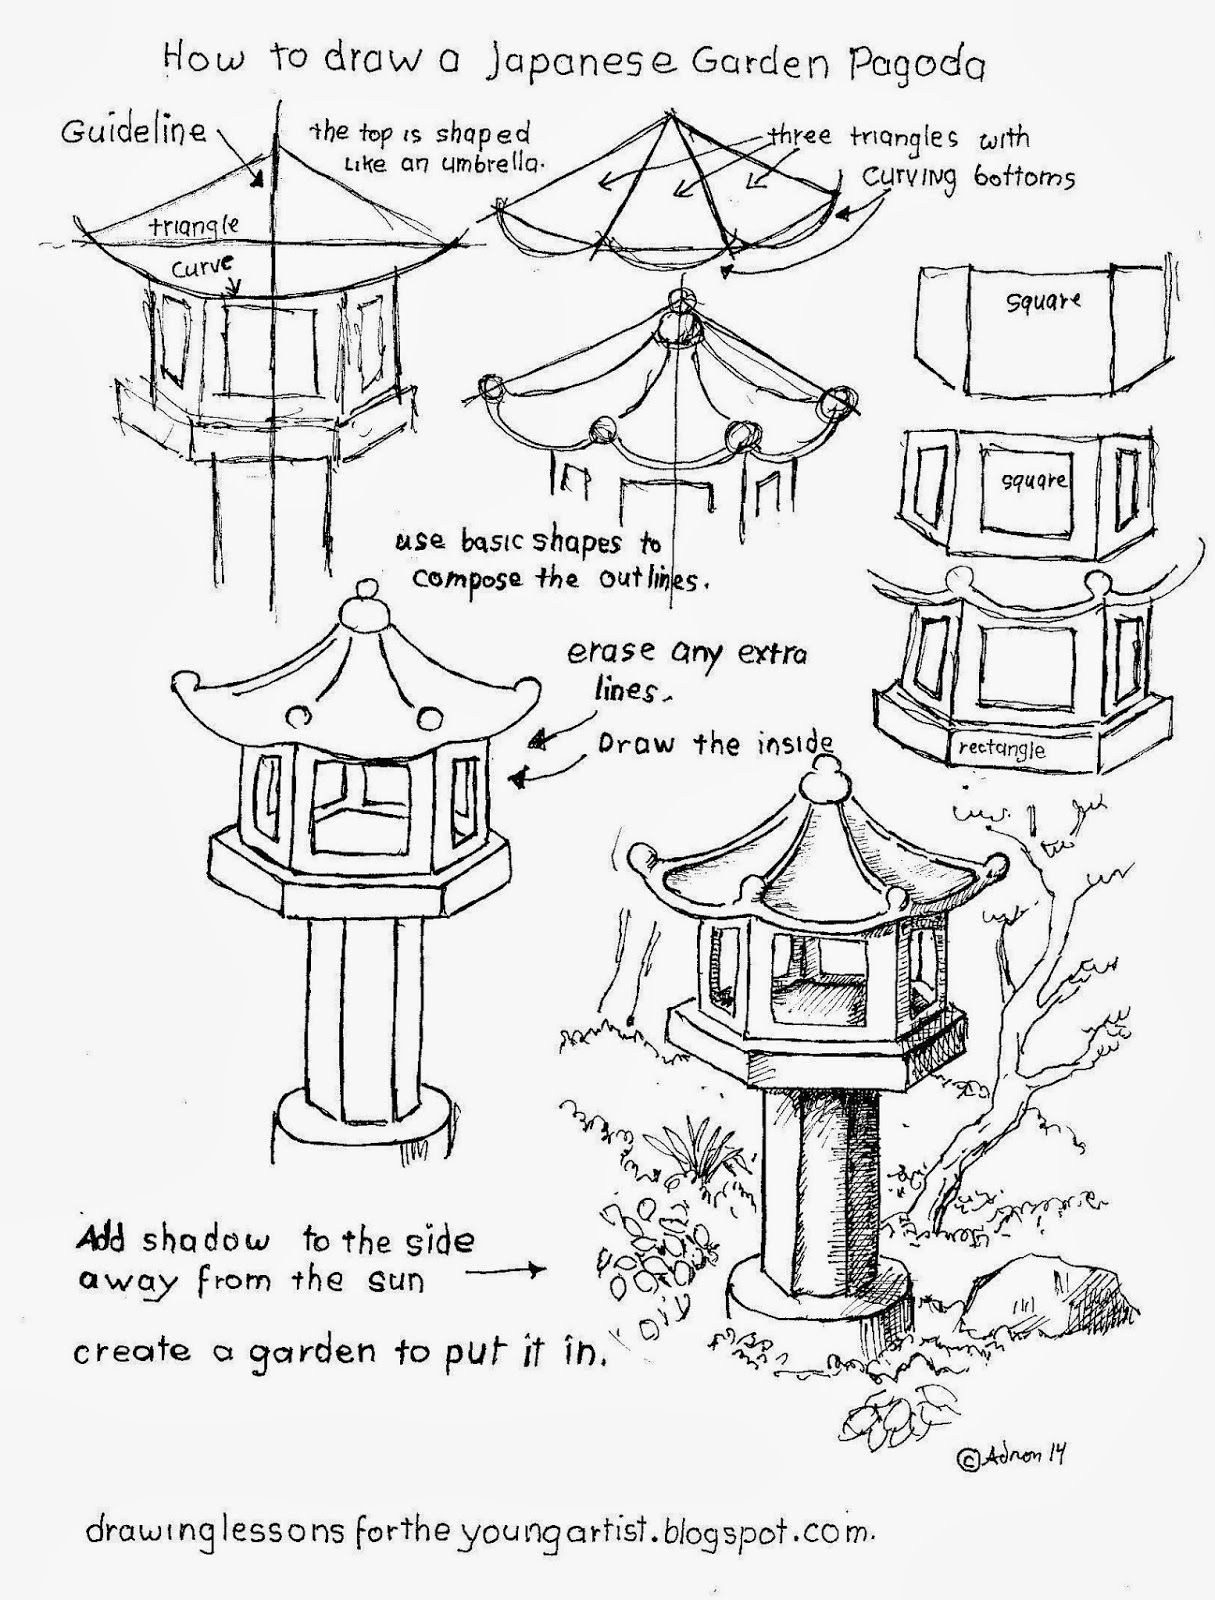 How To Draw A Japanese Garden Pagoda